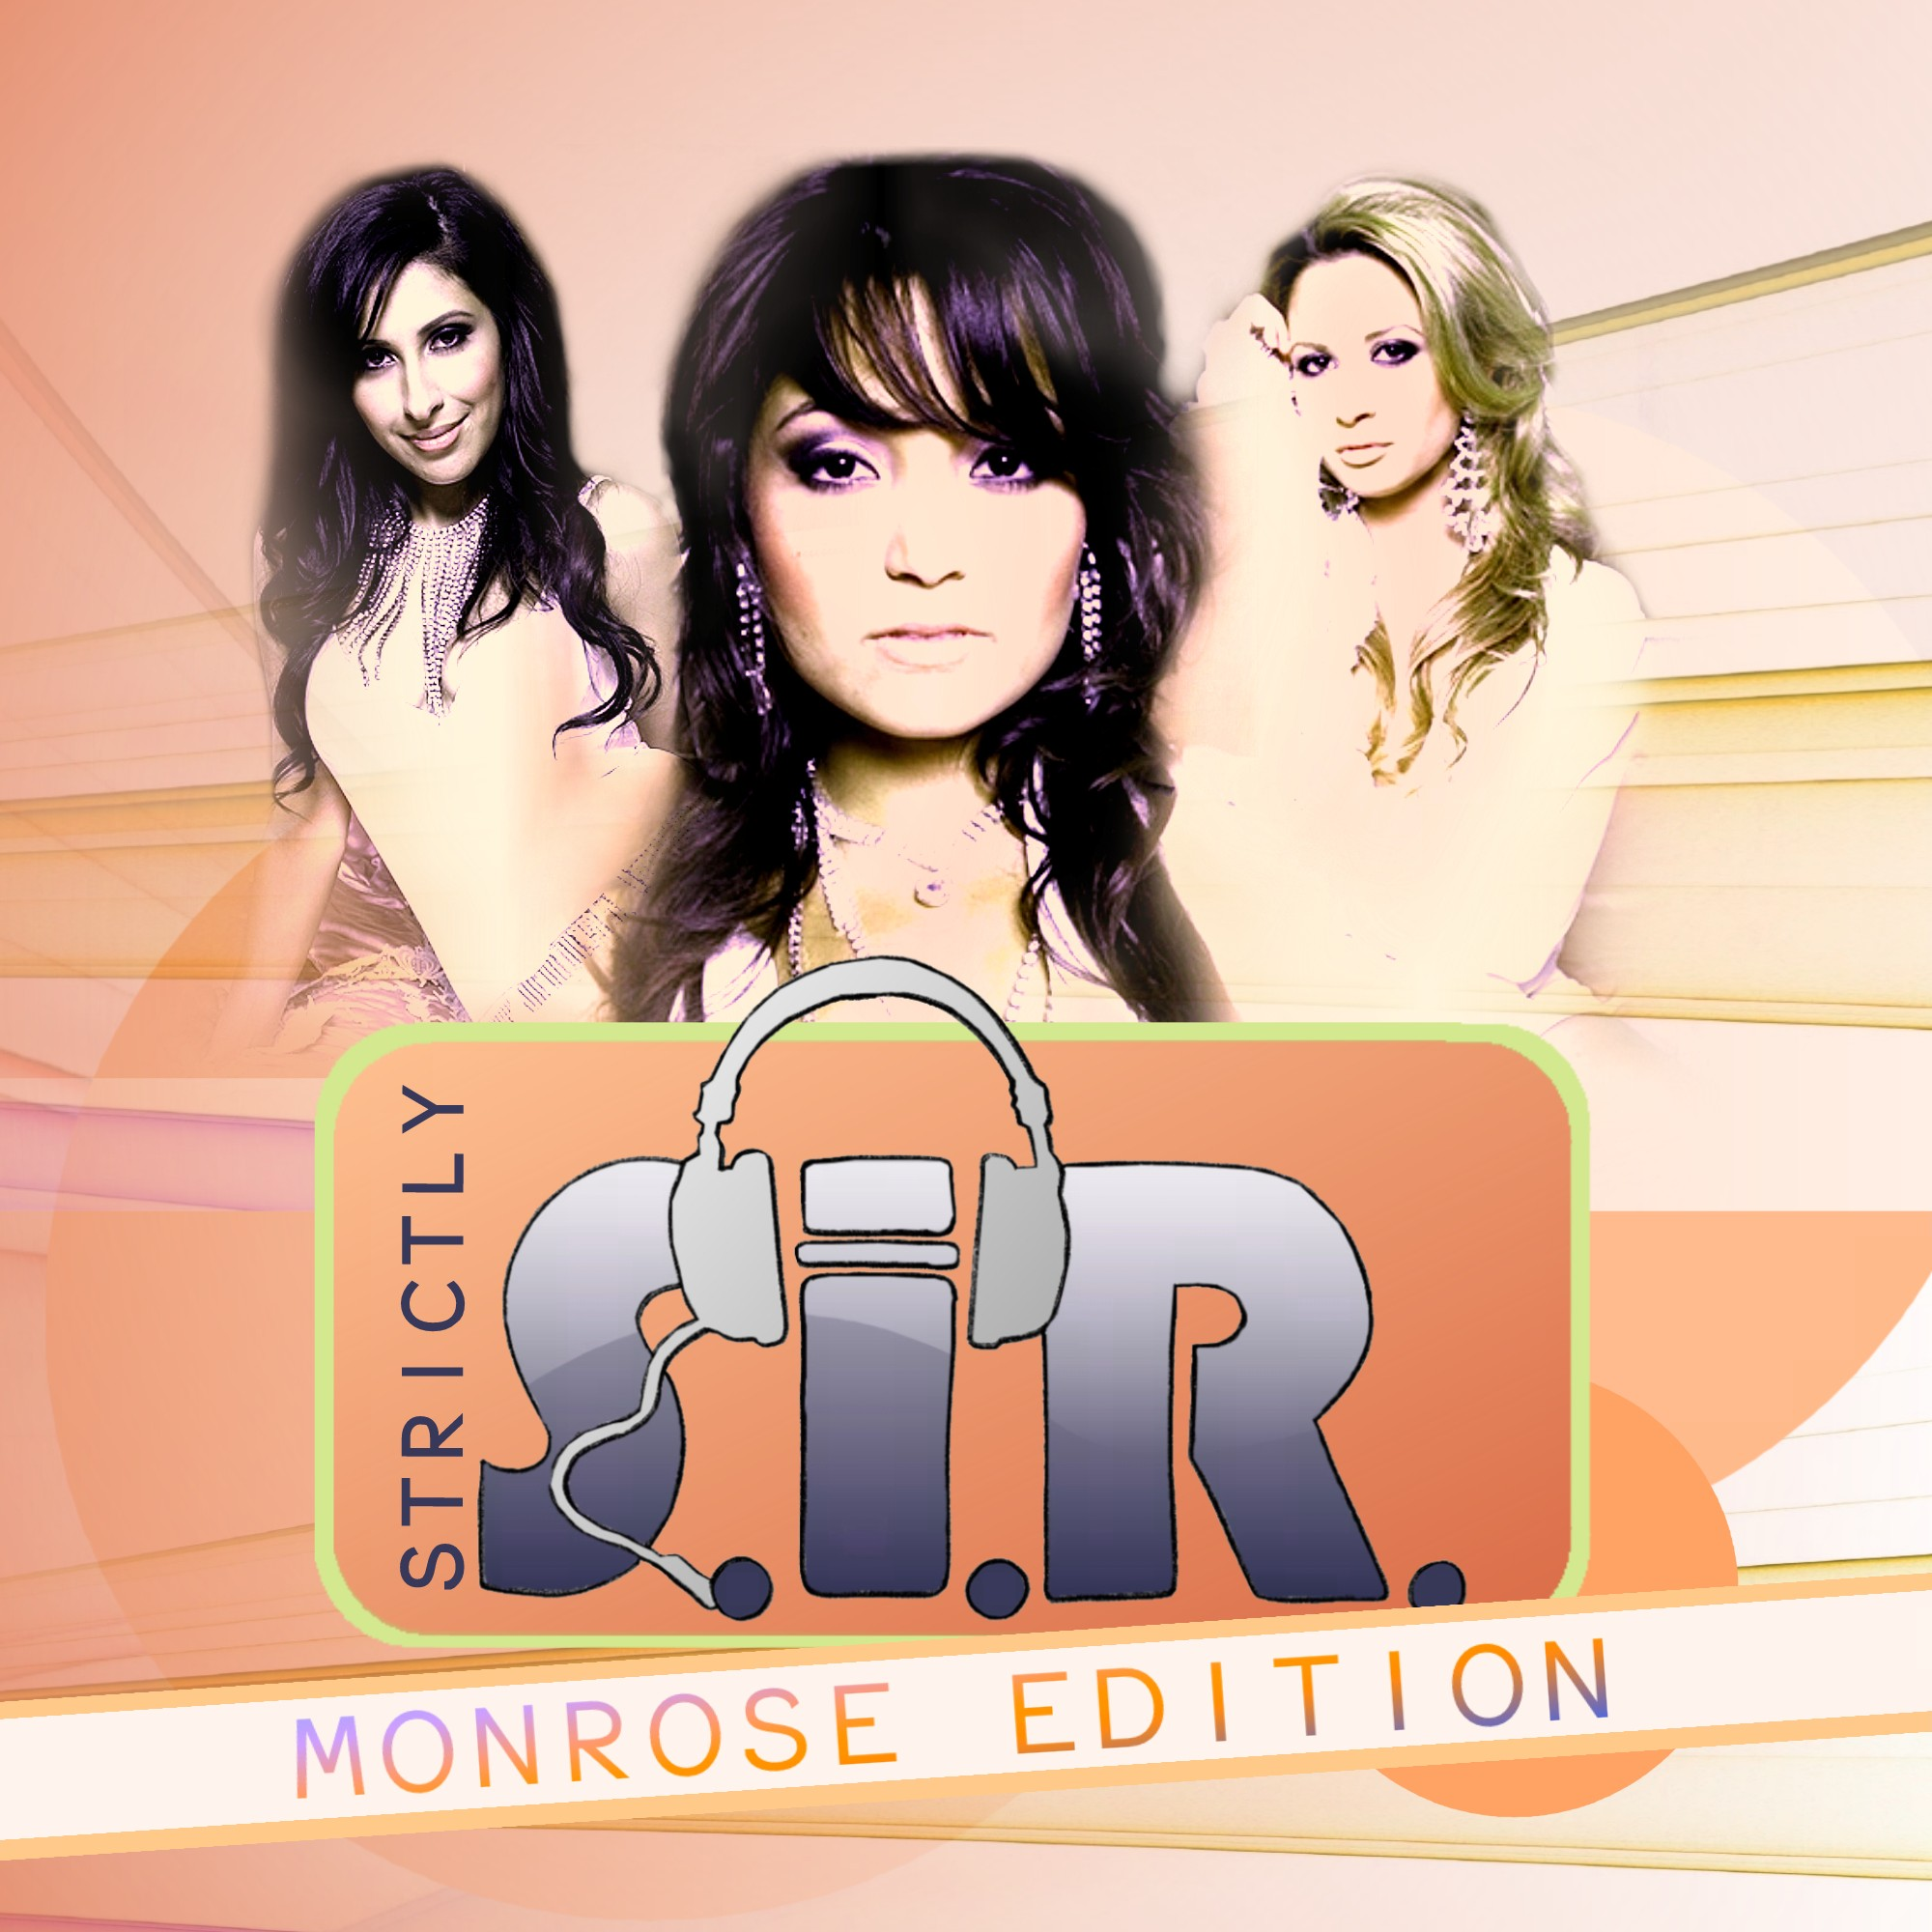 20 - Britney Spears vs. Monrose - Circus (The Strictly Physical Show) (S.I.R. Remix)